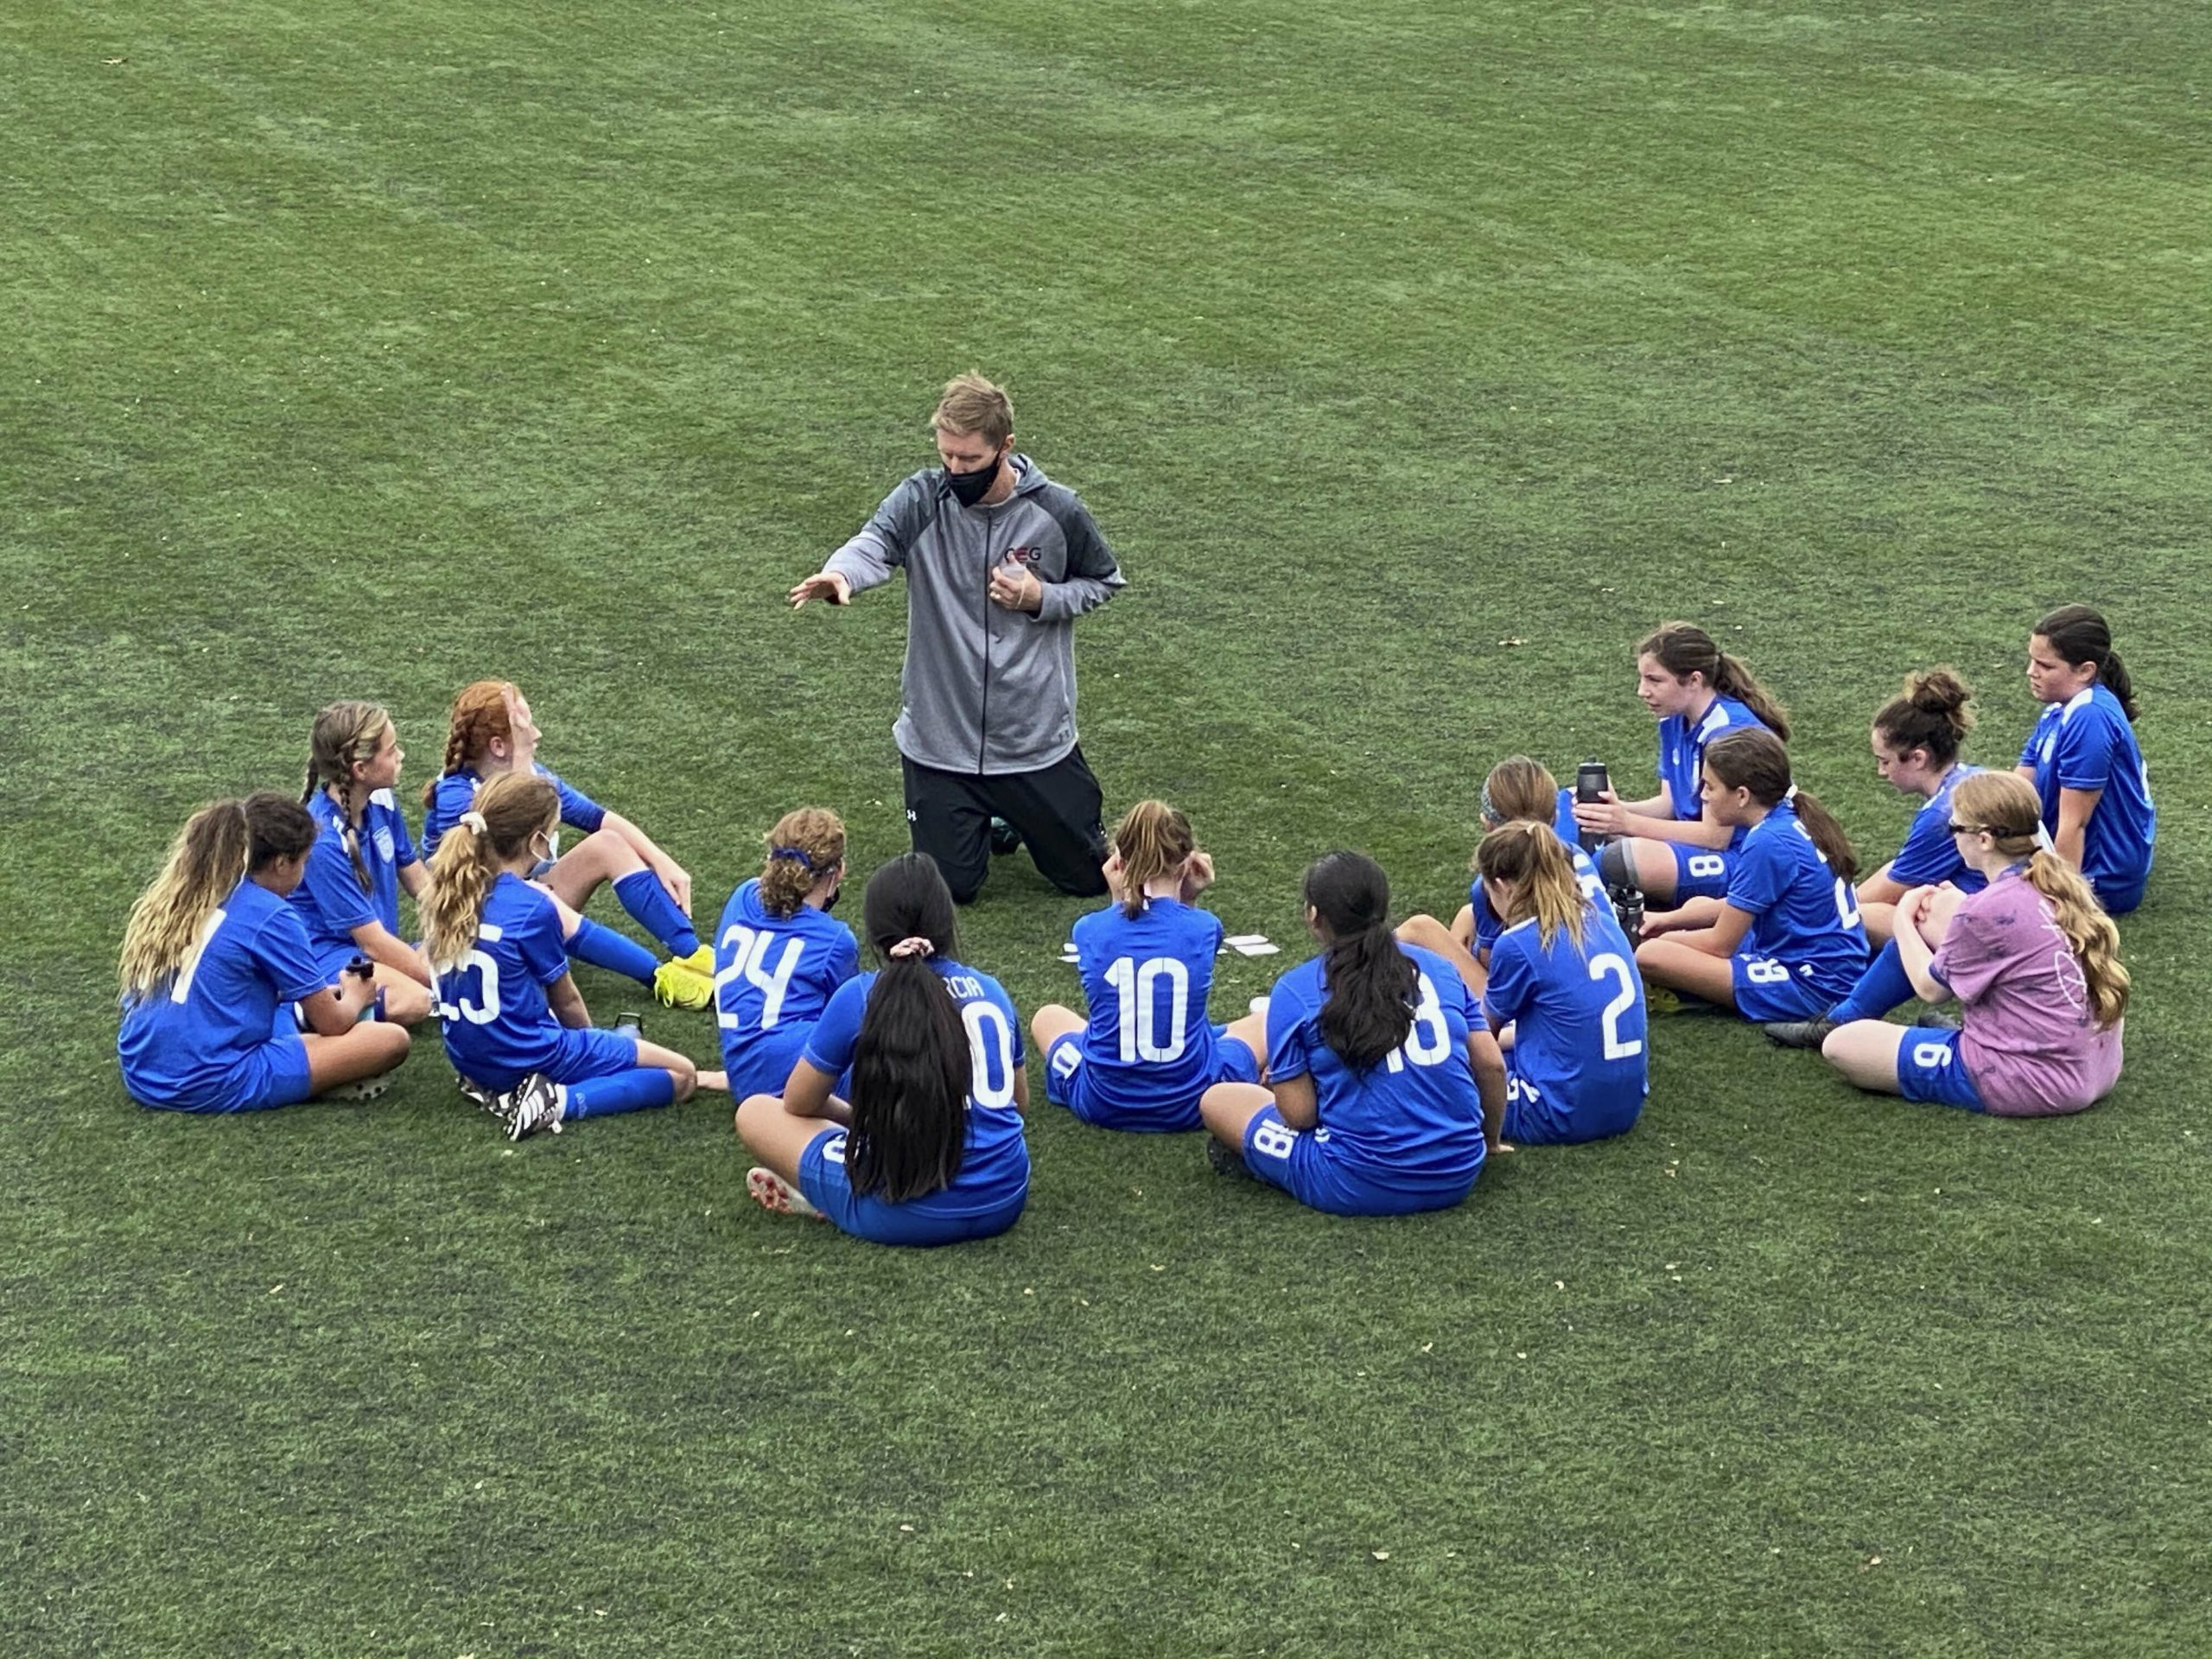 Southampton Soccer Club Executive Director Andreas Lindberg (center) has been able to spend more time coaching this fall, shown here with the club's 2008 girls travel team, after fall seasons for collegiate sports were postponed due to the virus. In addition to his duties with the club, Lindberg, an East Quogue resident, is also the head coach of the Division I Seton Hall University men's soccer team, which is now hoping to play in the spring.